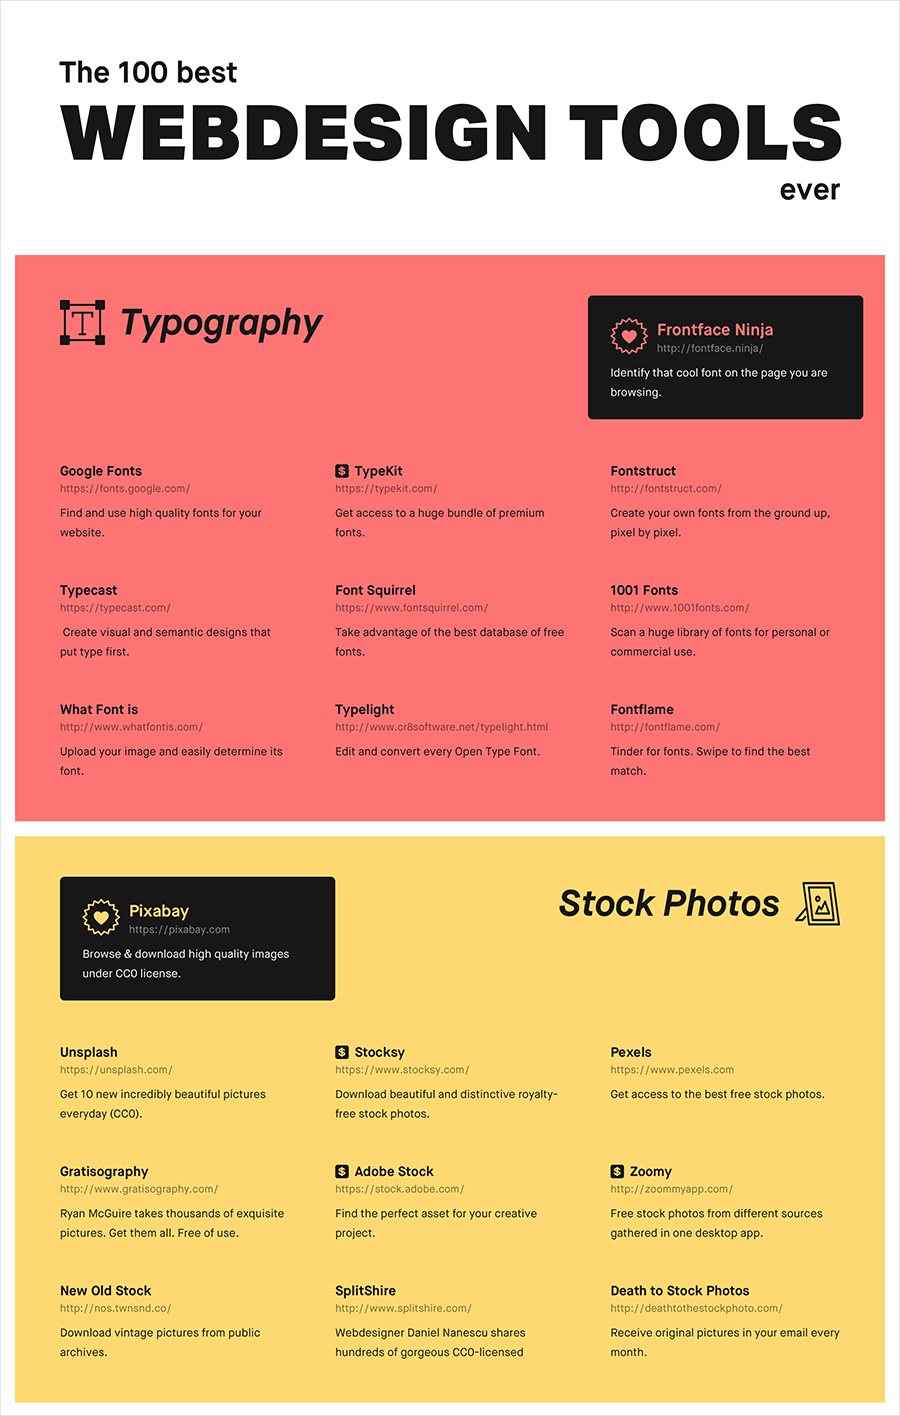 101 Infographic Examples on 19 Different Subjects | Visual